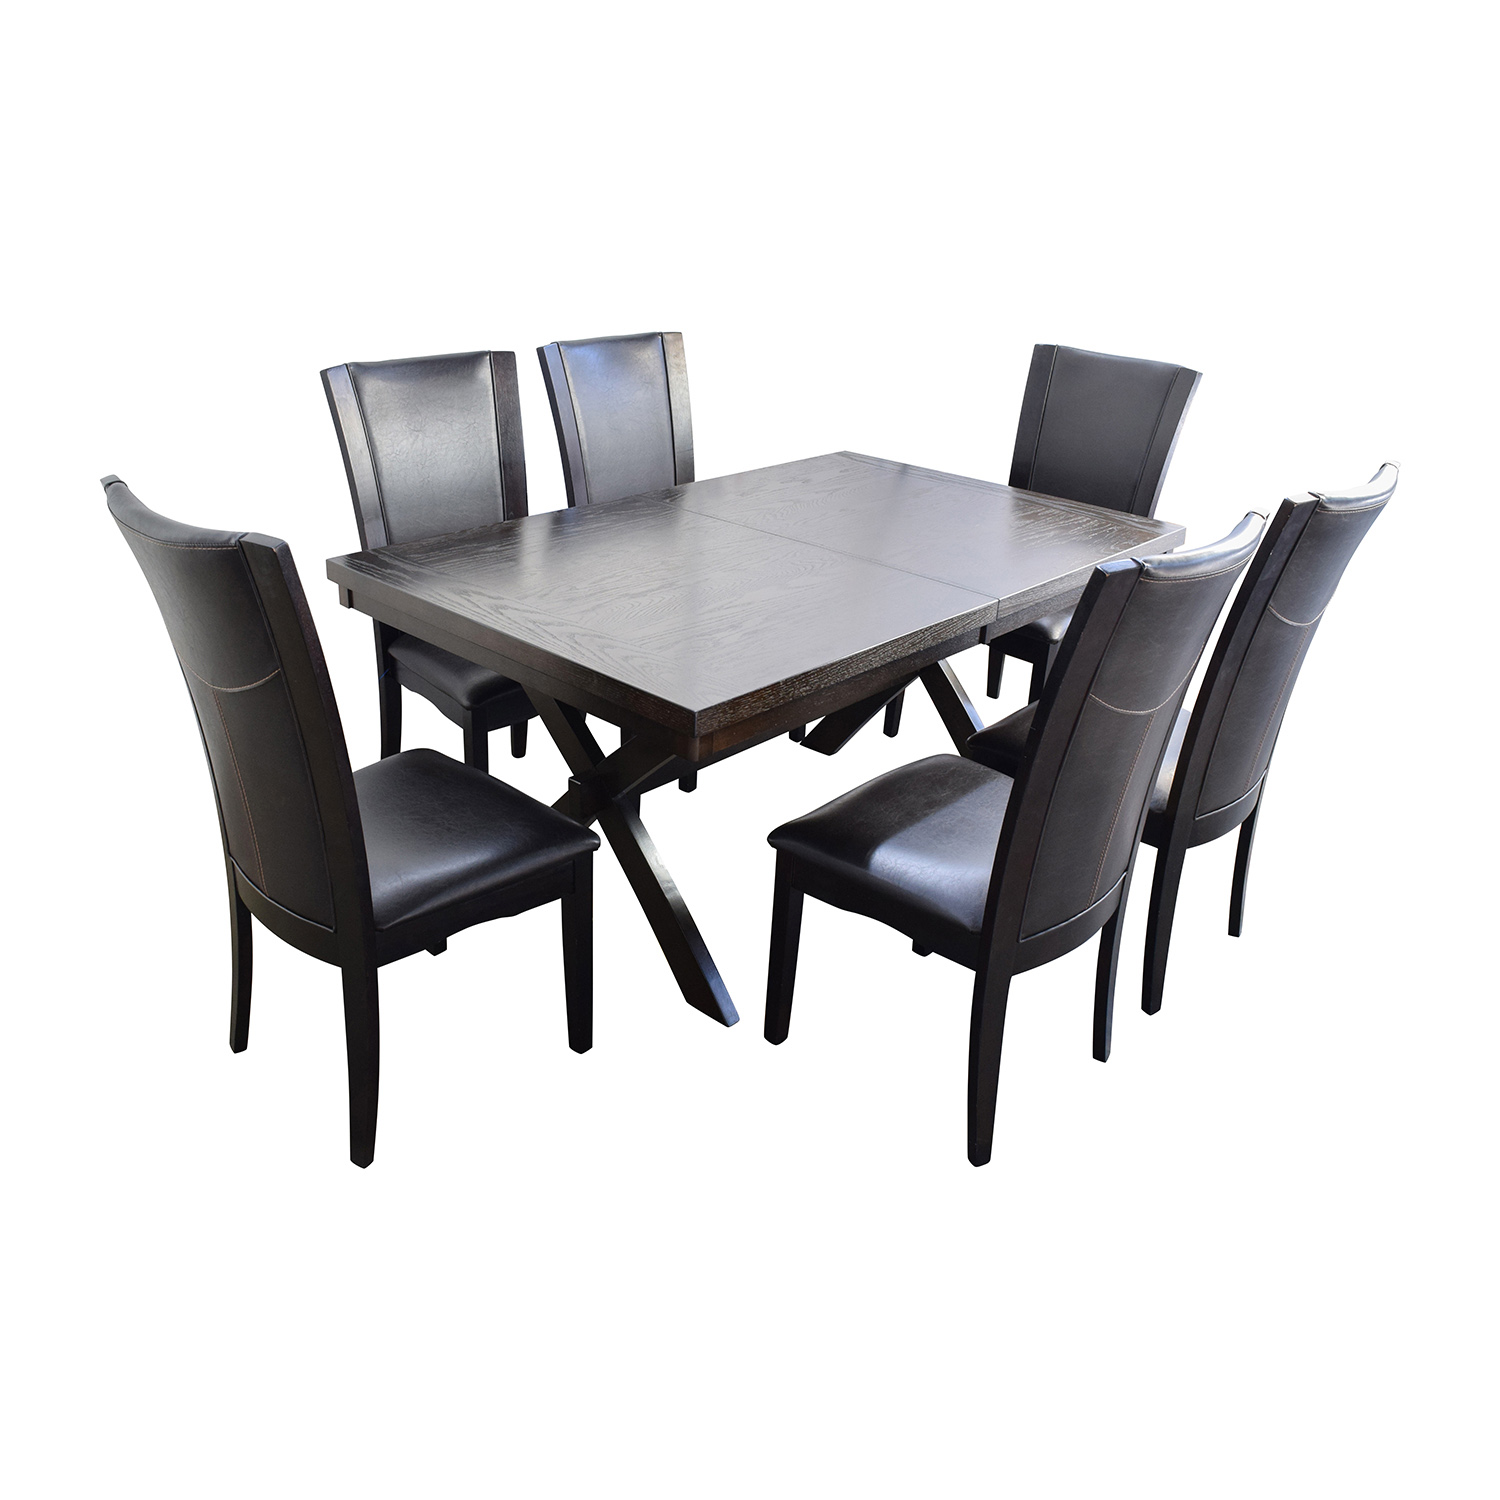 Raymour and Flanigan Raymour & Flanigan Wood and Leather Dining Set for sale